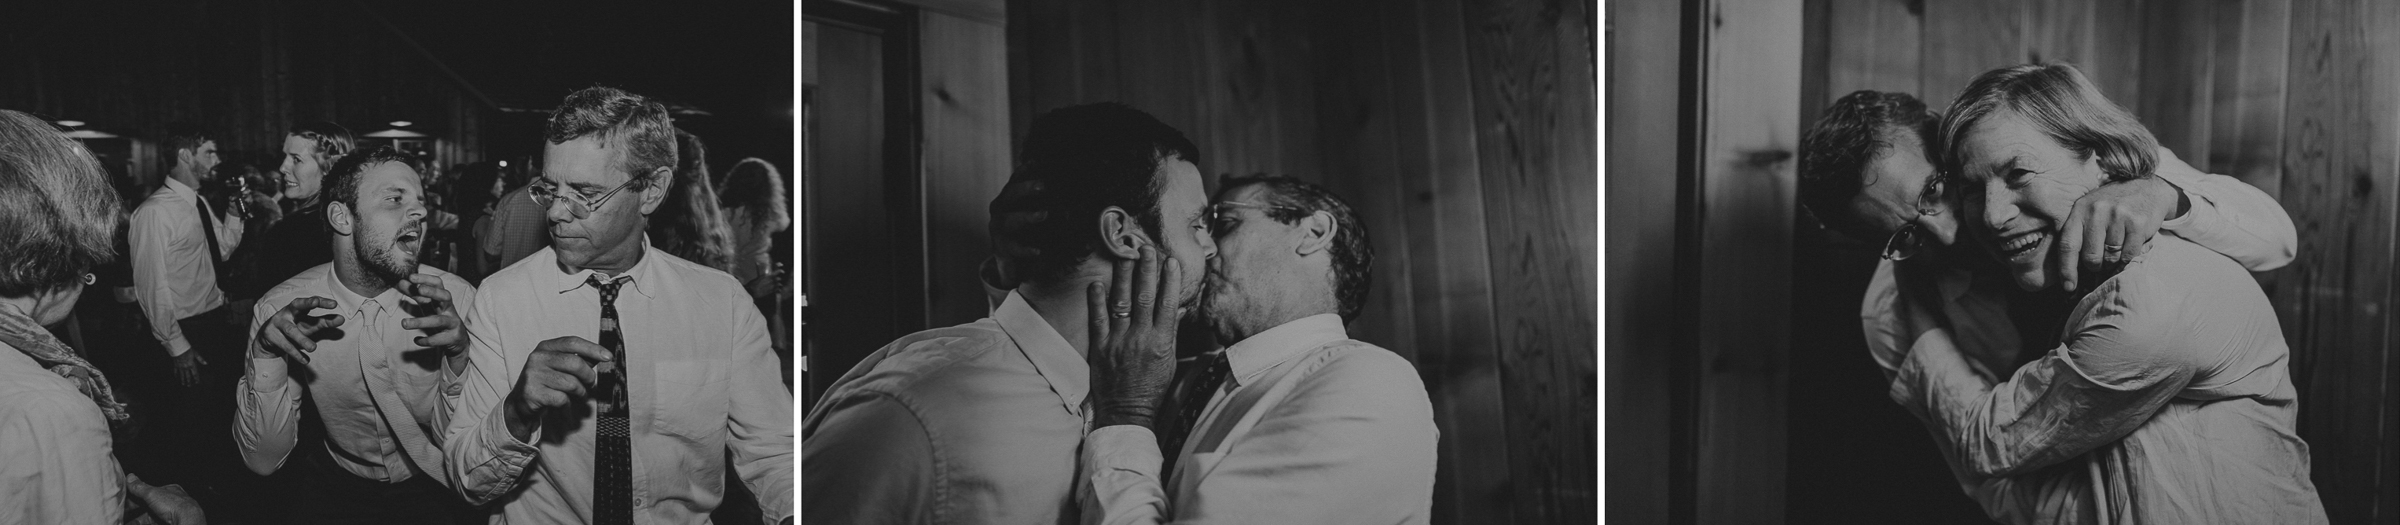 Isaiah + Taylor Photography - Camp Colton Wedding, Los Angeles Wedding Photographer-151.jpg